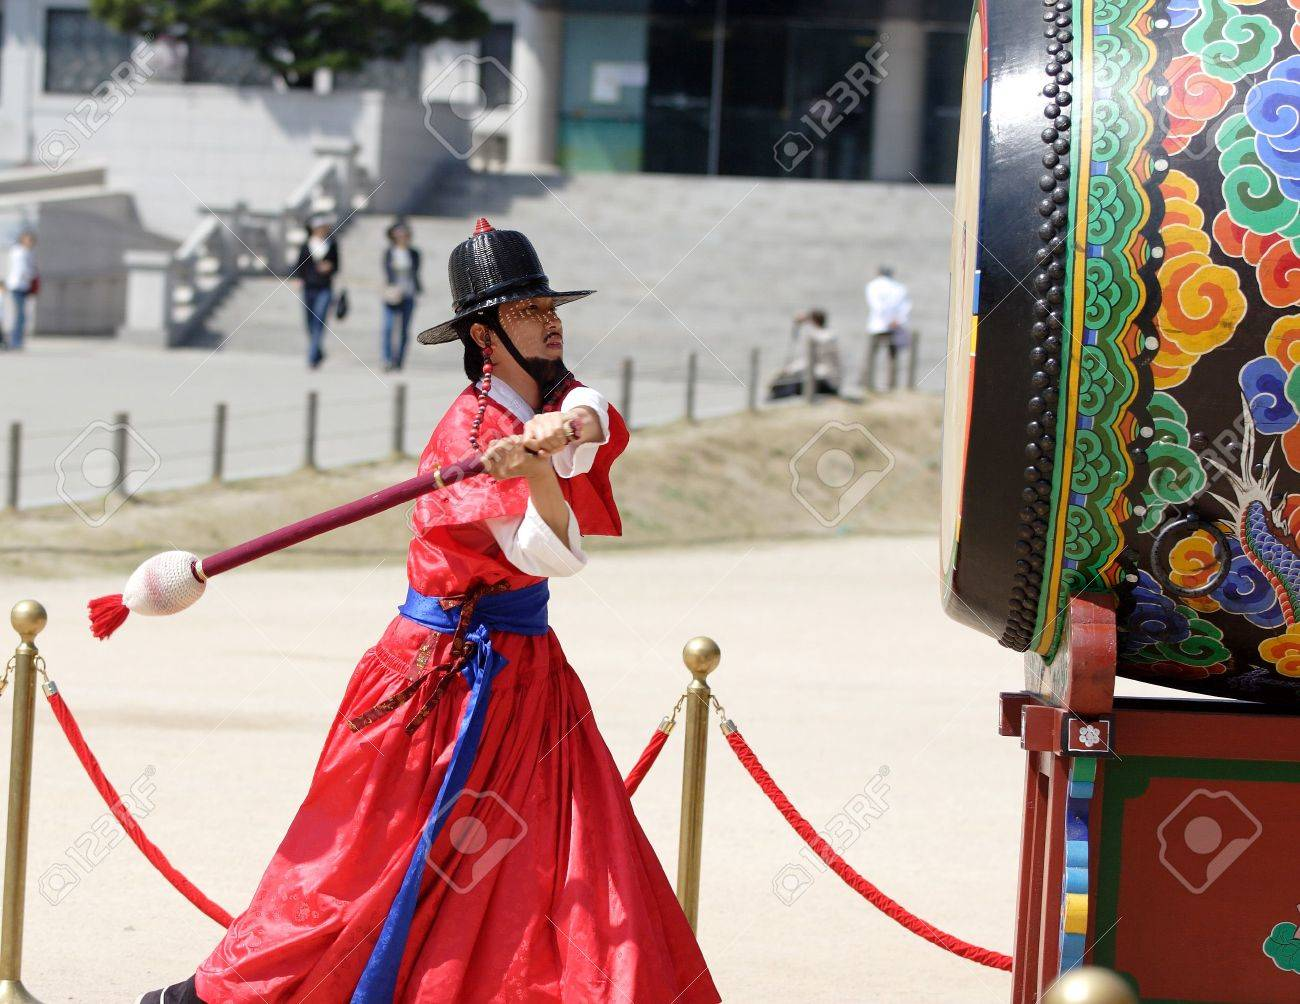 Korean man in traditional costume beats the drum to signal the changing of the guard at Kyoungbok Palace in Seoul, Korea. 04/16/2008 - 6886161